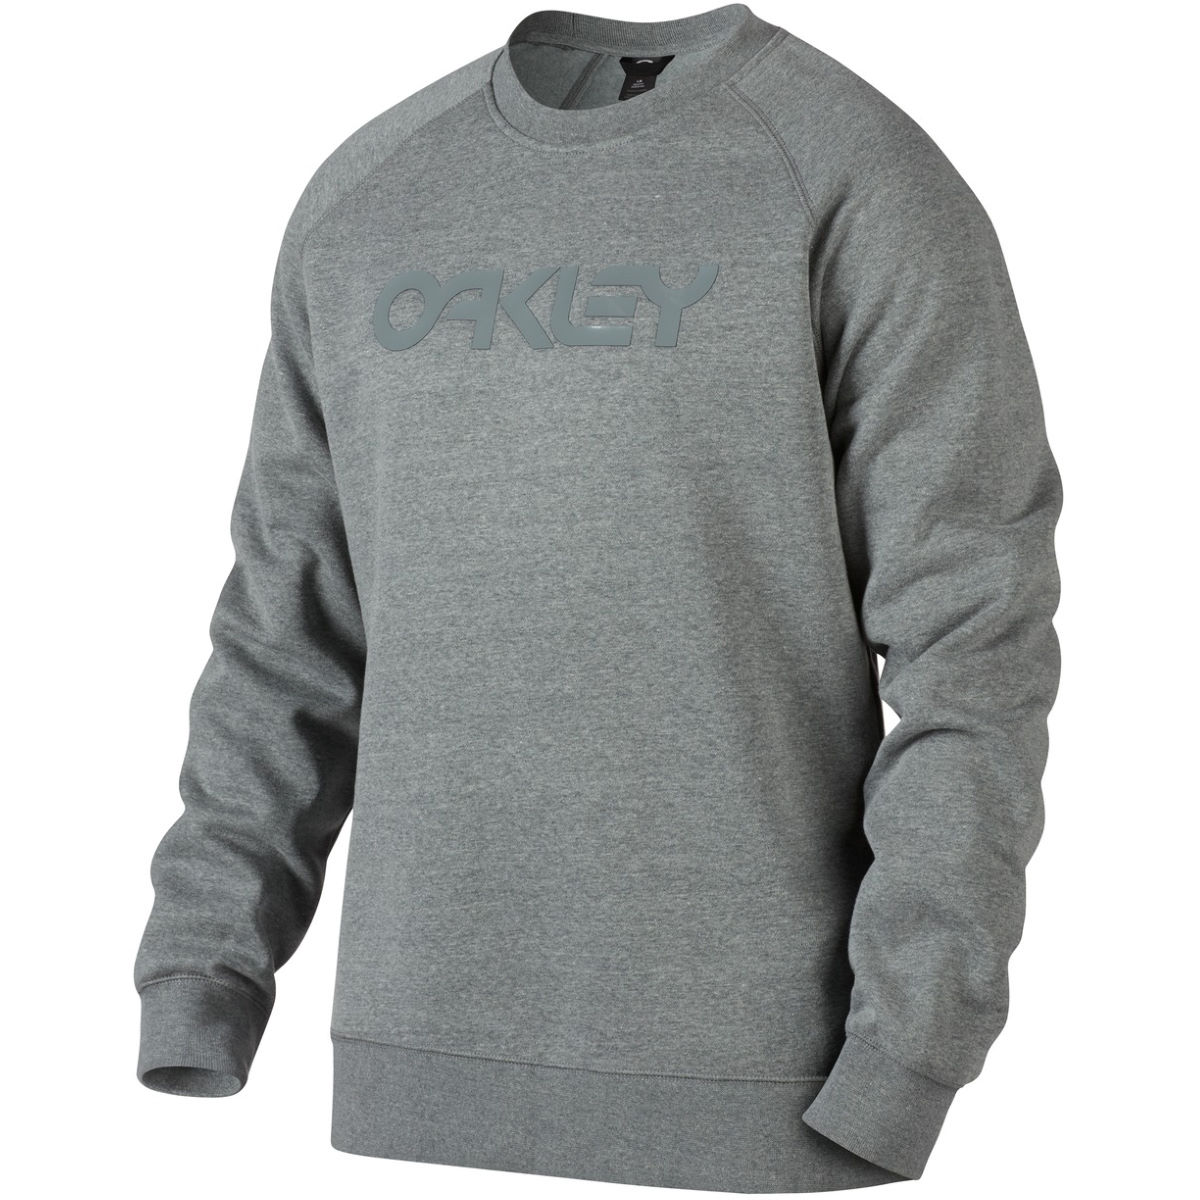 Maillot Oakley Dwr Fp (col rond) - S Fathom